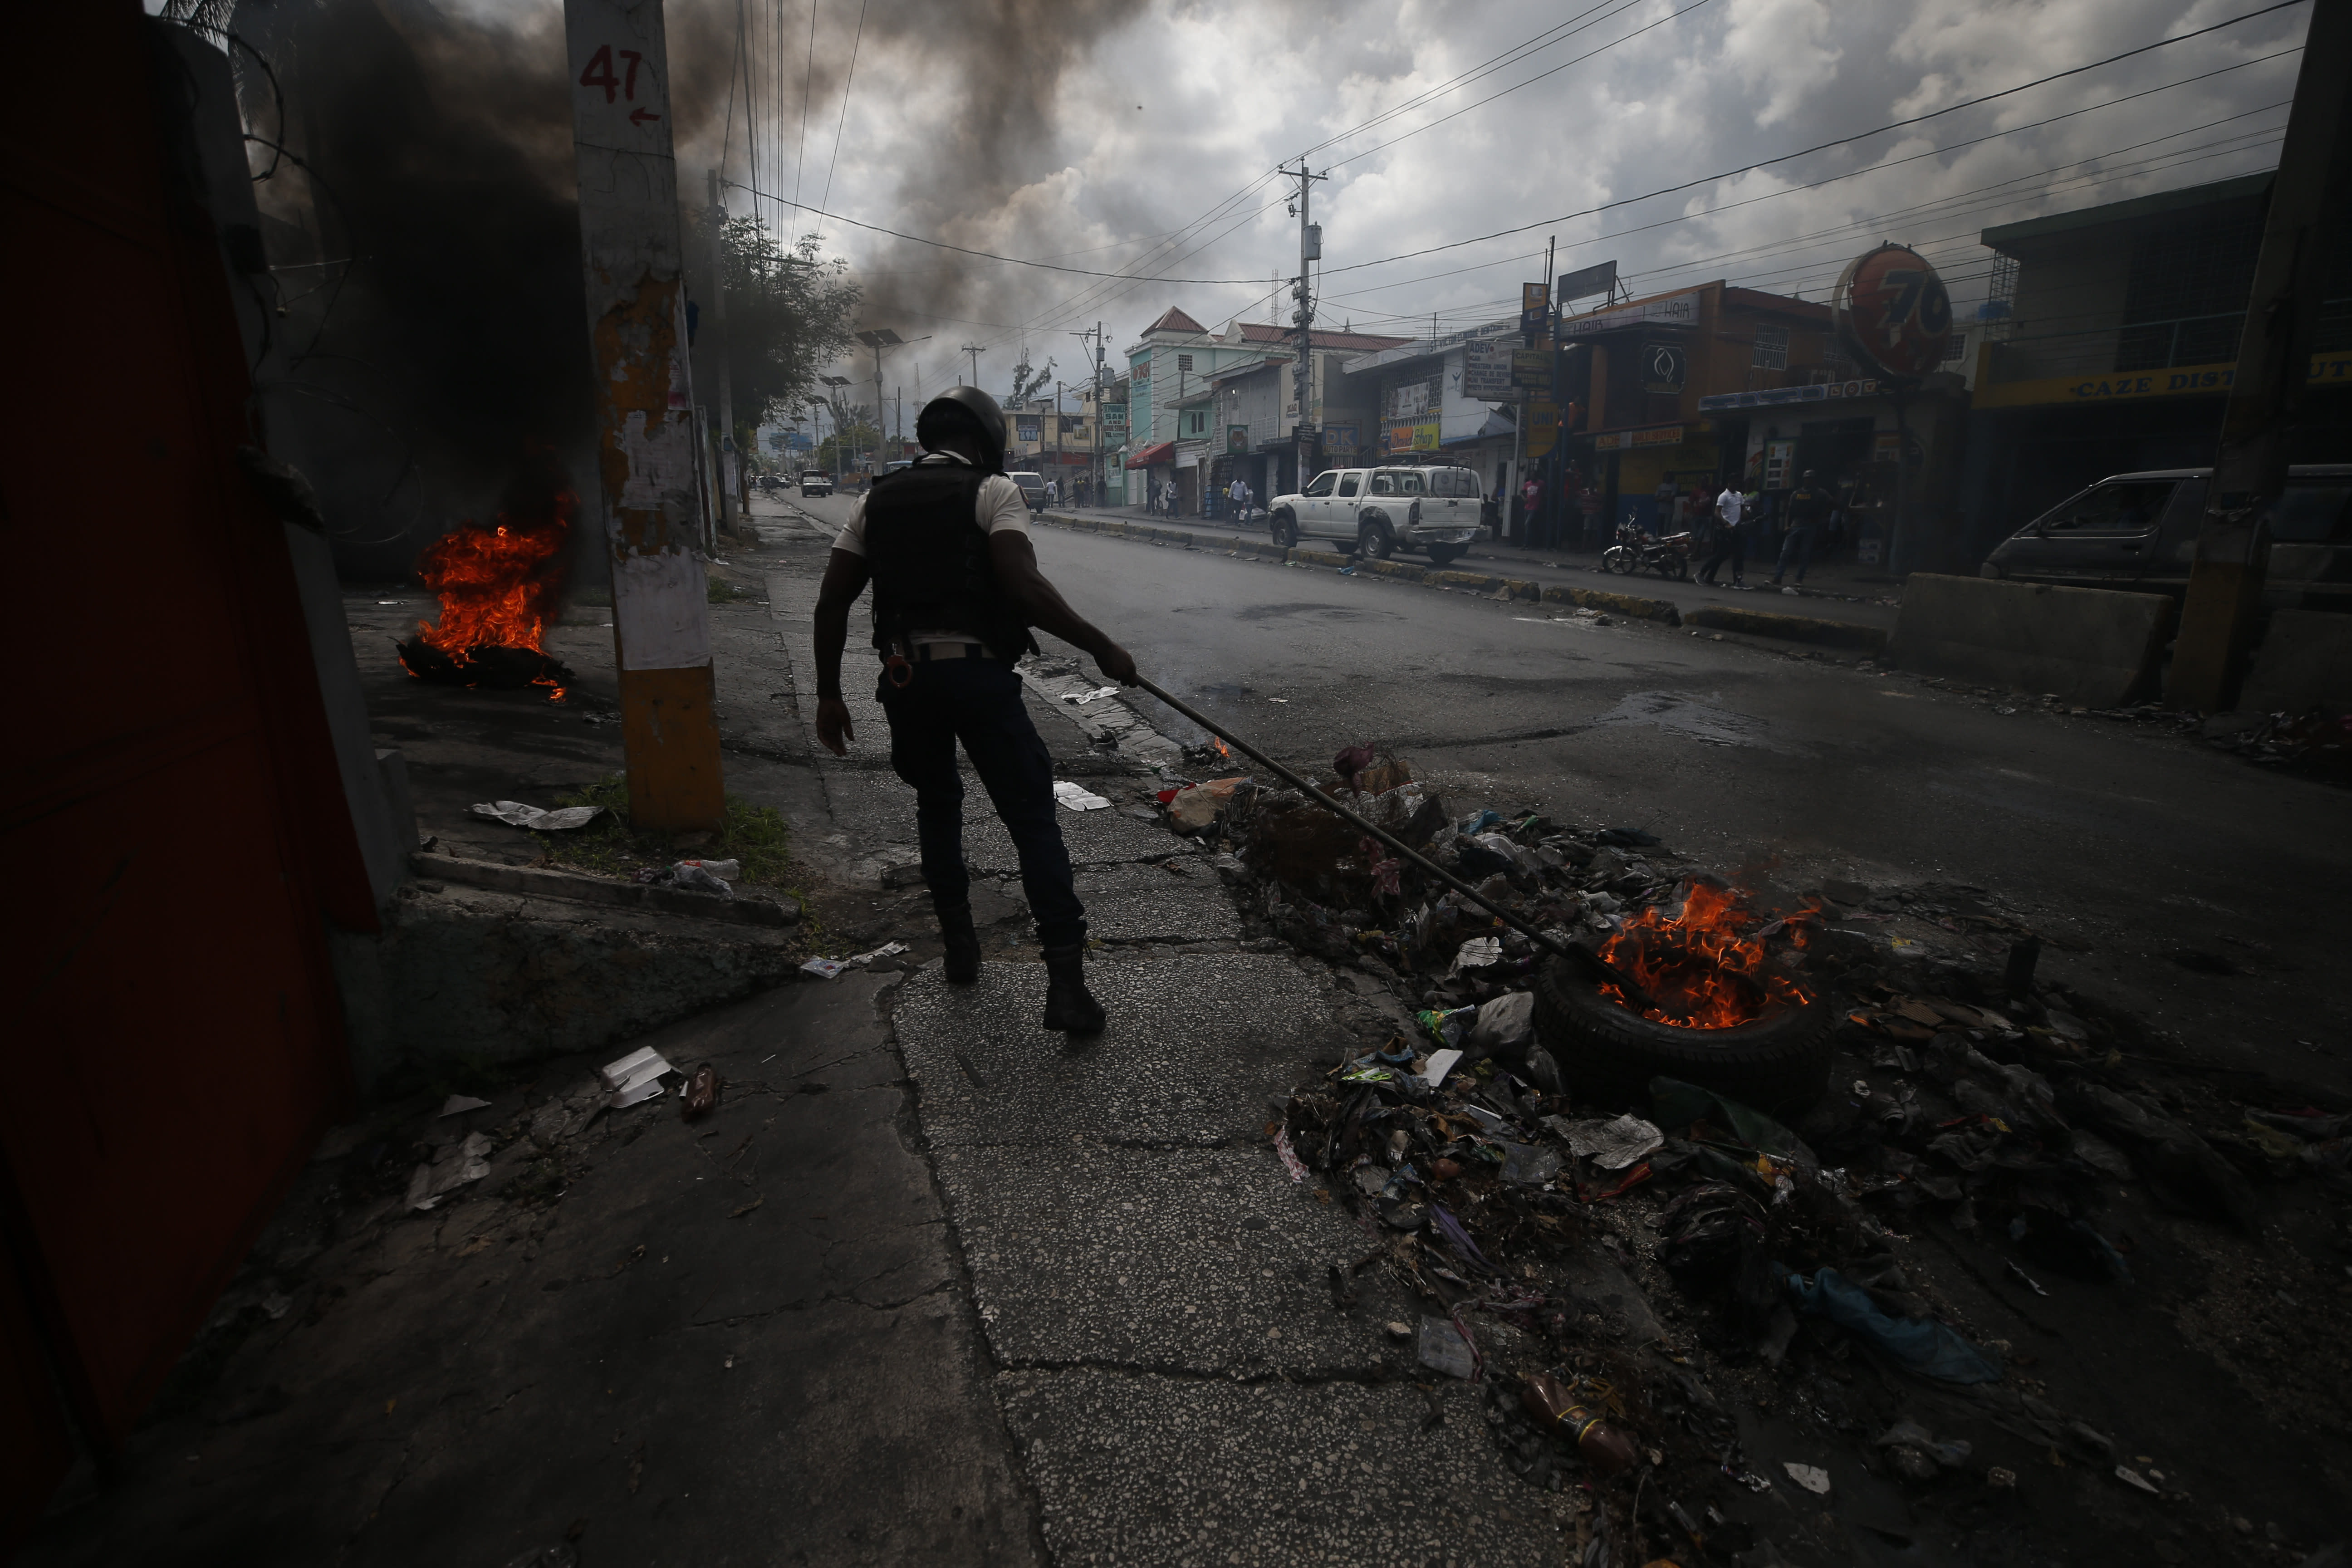 """A policeman uses a rake to drag burning tires out of the road as police break up a barricade in Port-au-Prince, Haiti, Wednesday, Oct. 2, 2019. A group of men was protesting at the intersection after commissioning a mural of opposition organizer Jose Mano Victorieux, known as """"Badou,"""" who they said was executed Saturday night by unknown assailants.(AP Photo/Rebecca Blackwell)"""